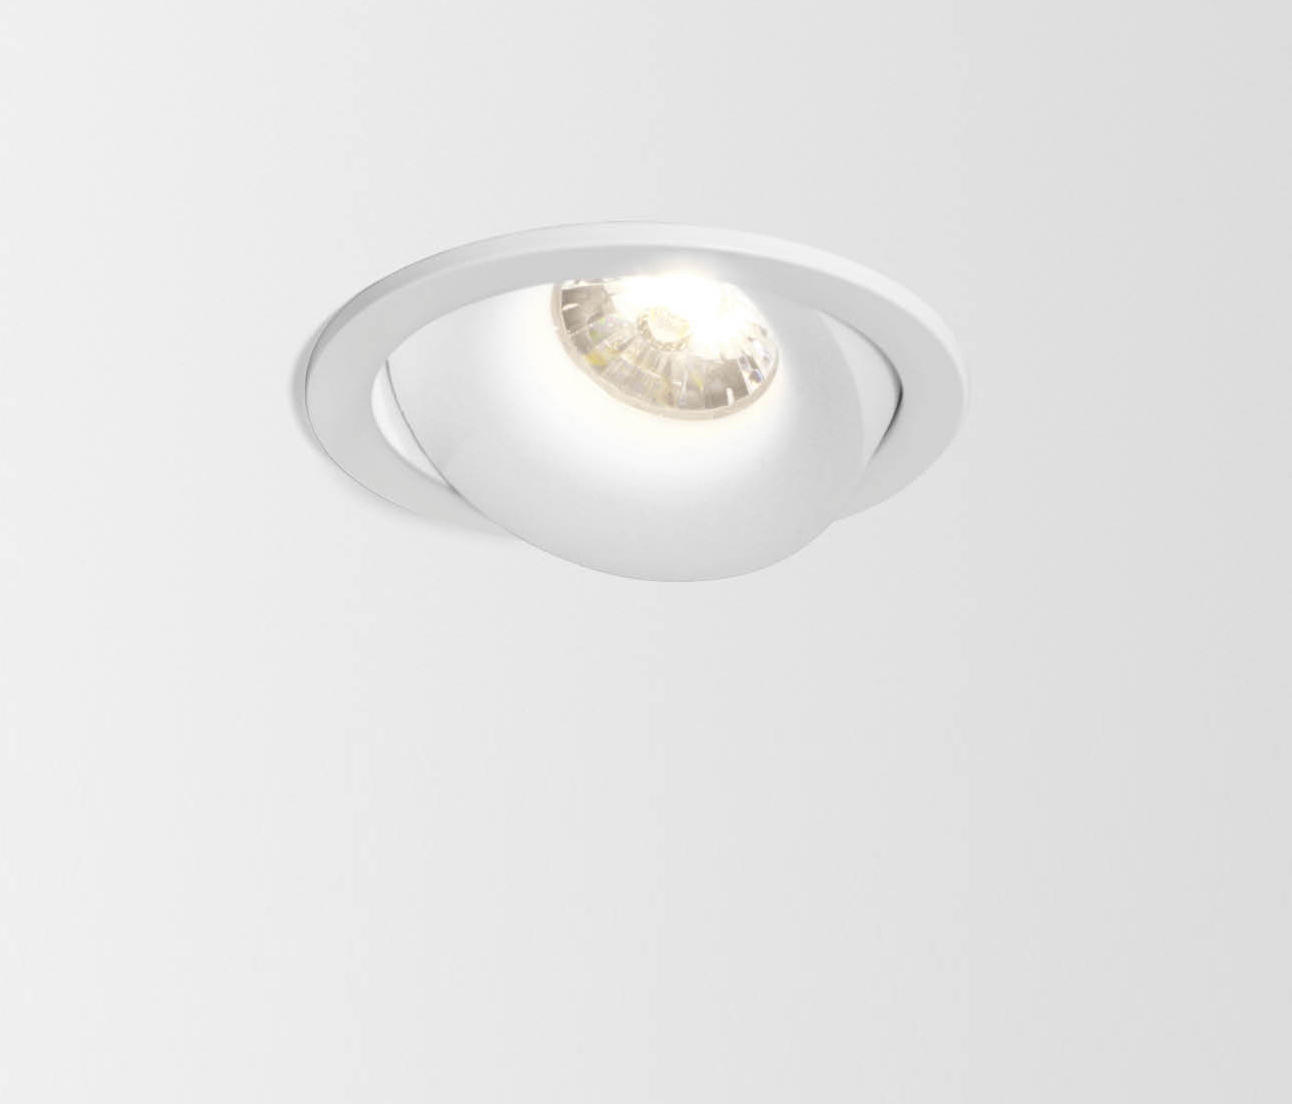 RONY 1.0 - Spotlights from Wever  for Ceiling Lamp Texture  131fsj